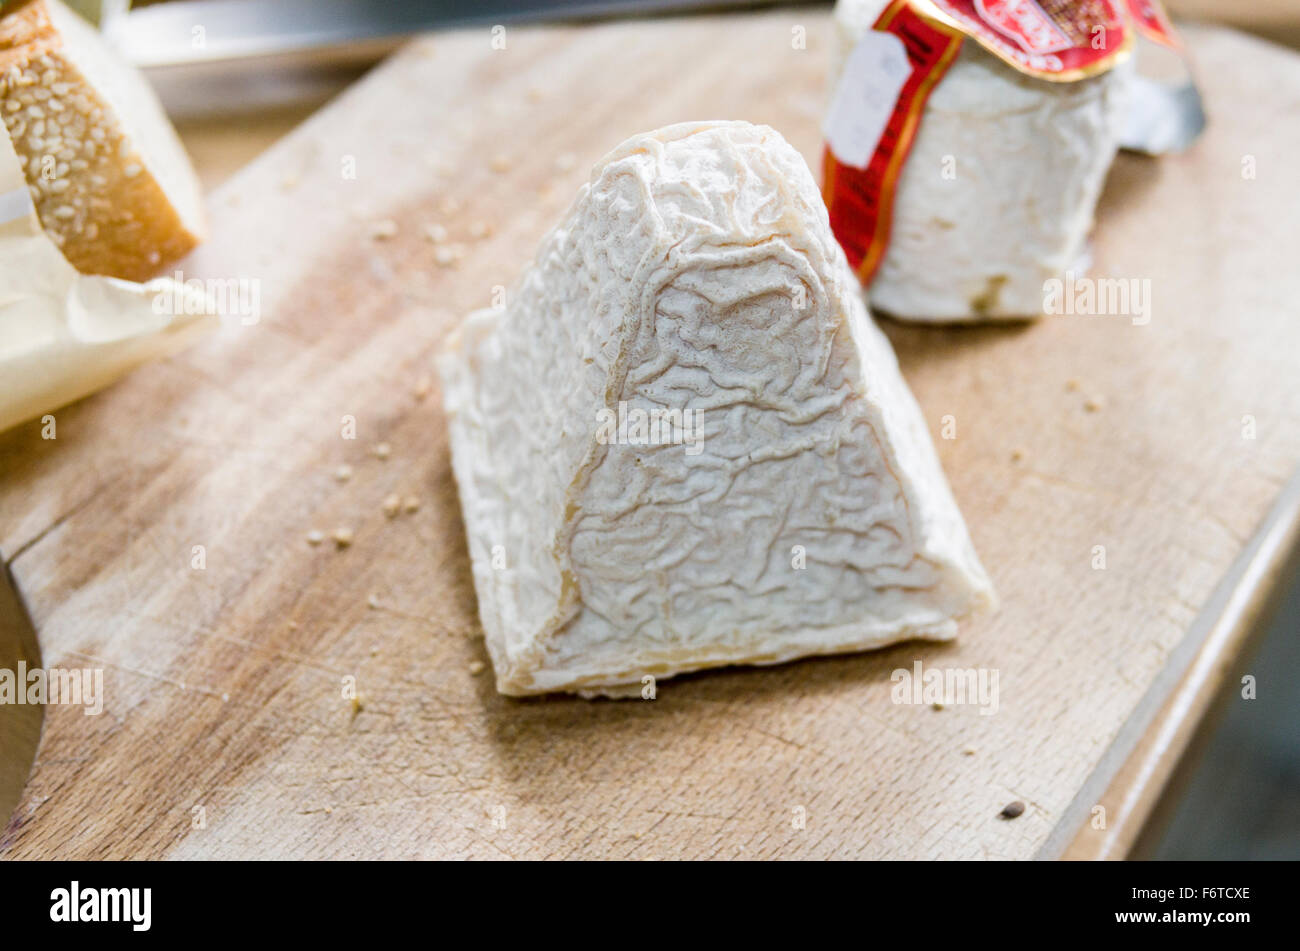 The Wrinkled Rind of a piece of Pouligny St Pierre cheese. A block of cheese on a wooden cutting board. - Stock Image